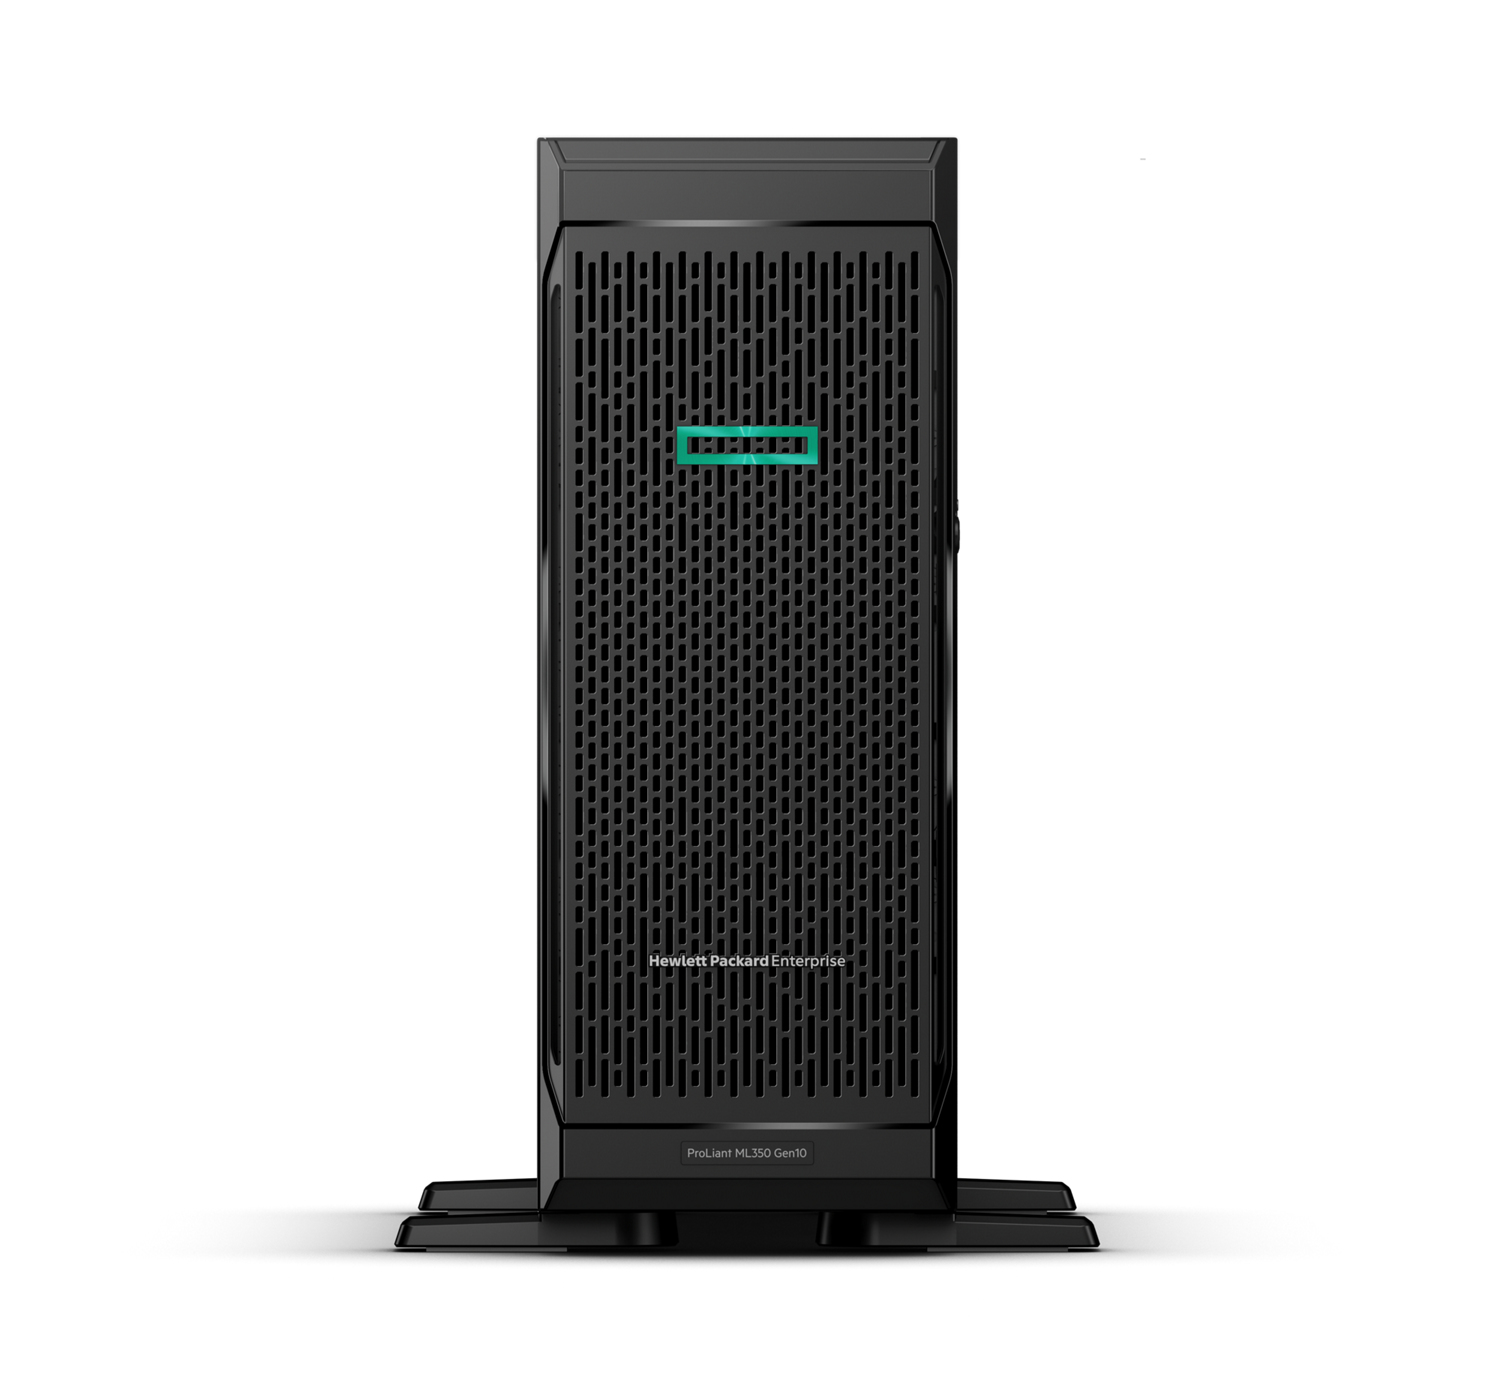 HPE ProLiant ML350 Gen10 serveur 48 To 2,4 GHz 16 Go Tour [4U] Intel® Xeon® Silver 800 W DDR4-SDRAM